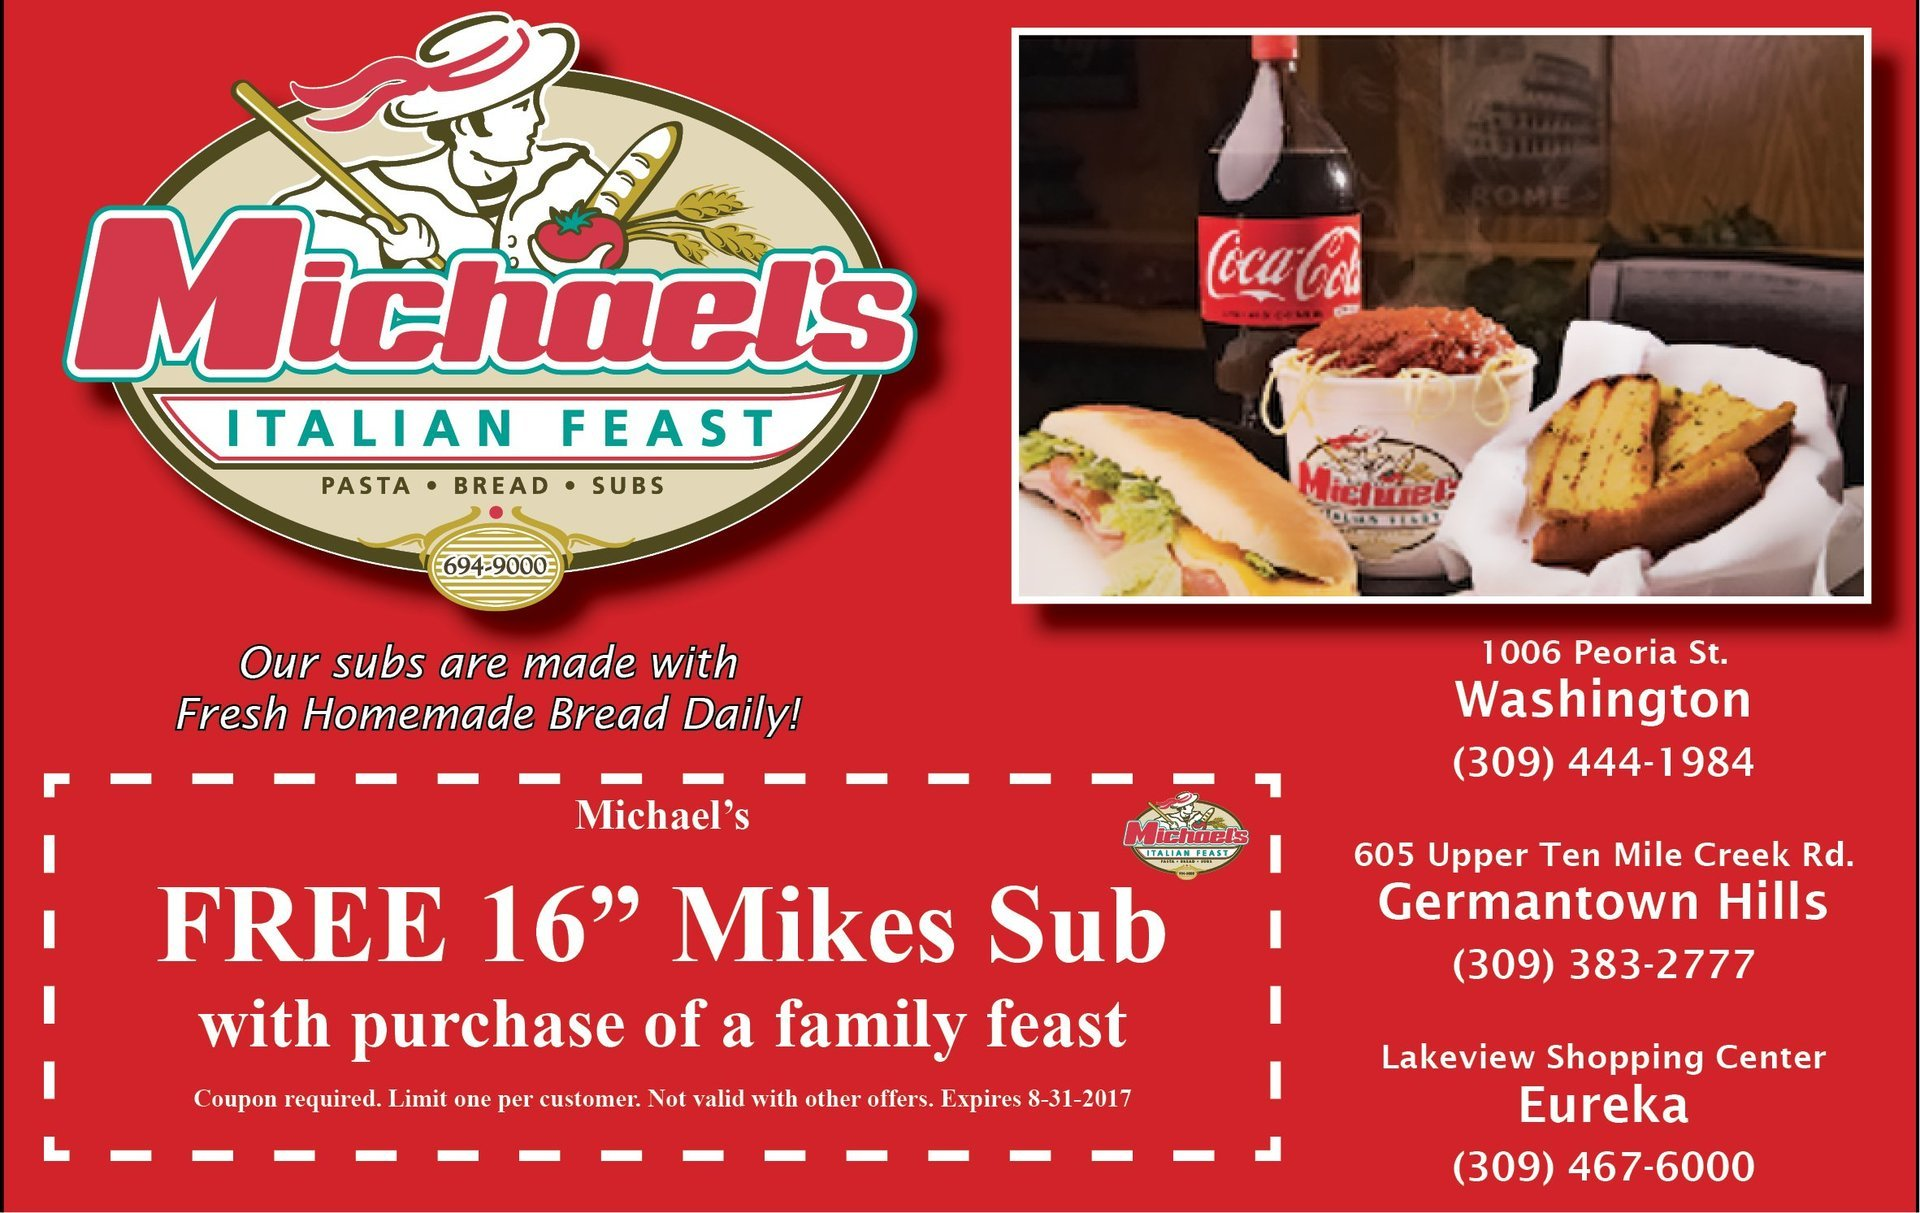 Michael's Italian Feast coupons